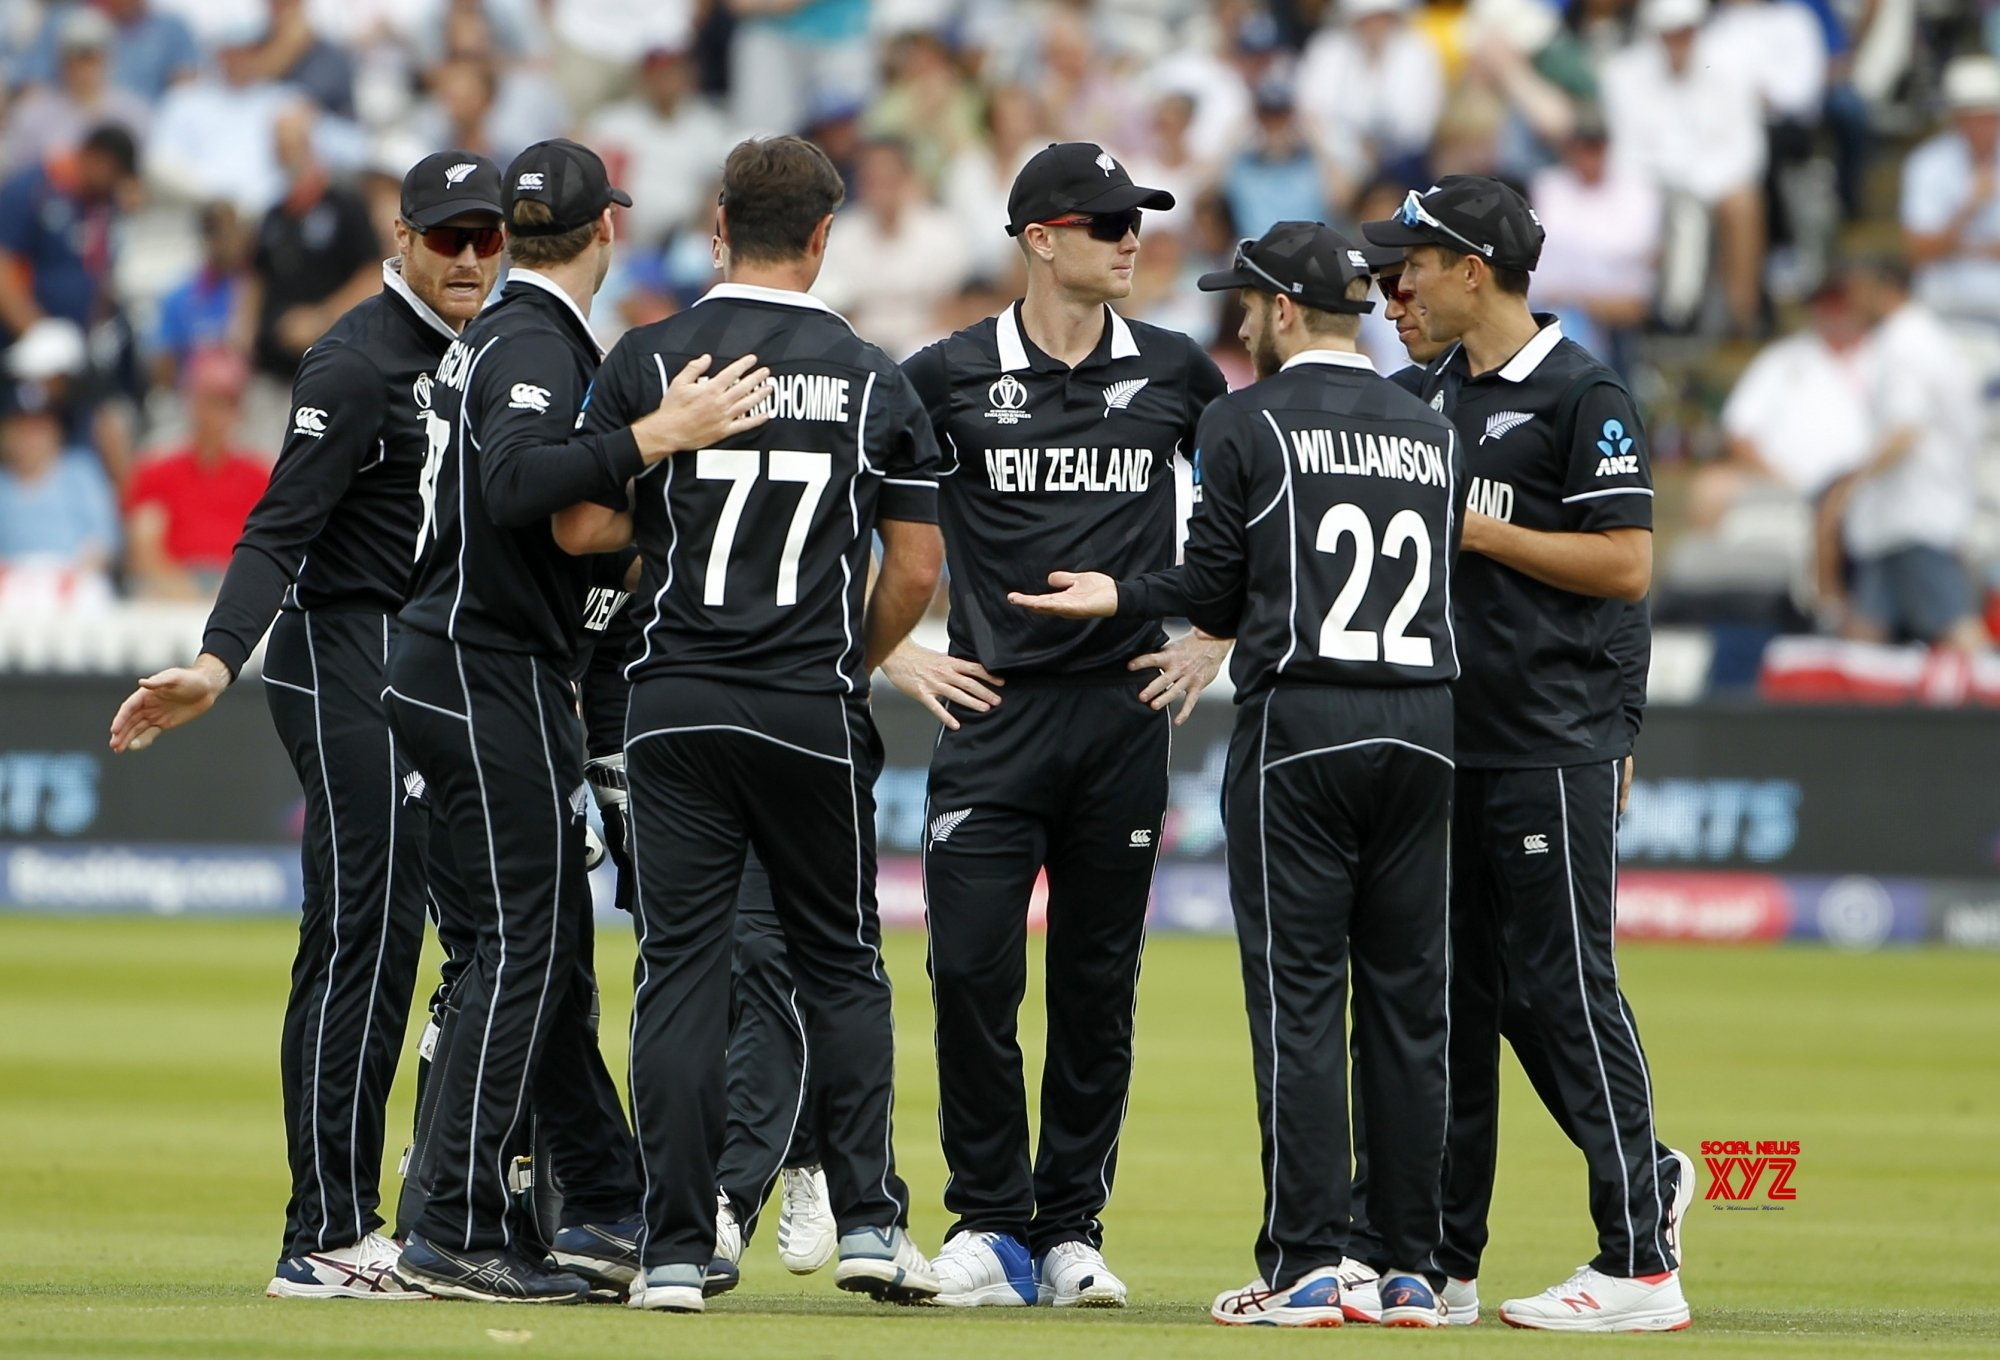 London (England): 2019 World Cup - Final - New Zealand Vs England (Batch - 35) #Gallery